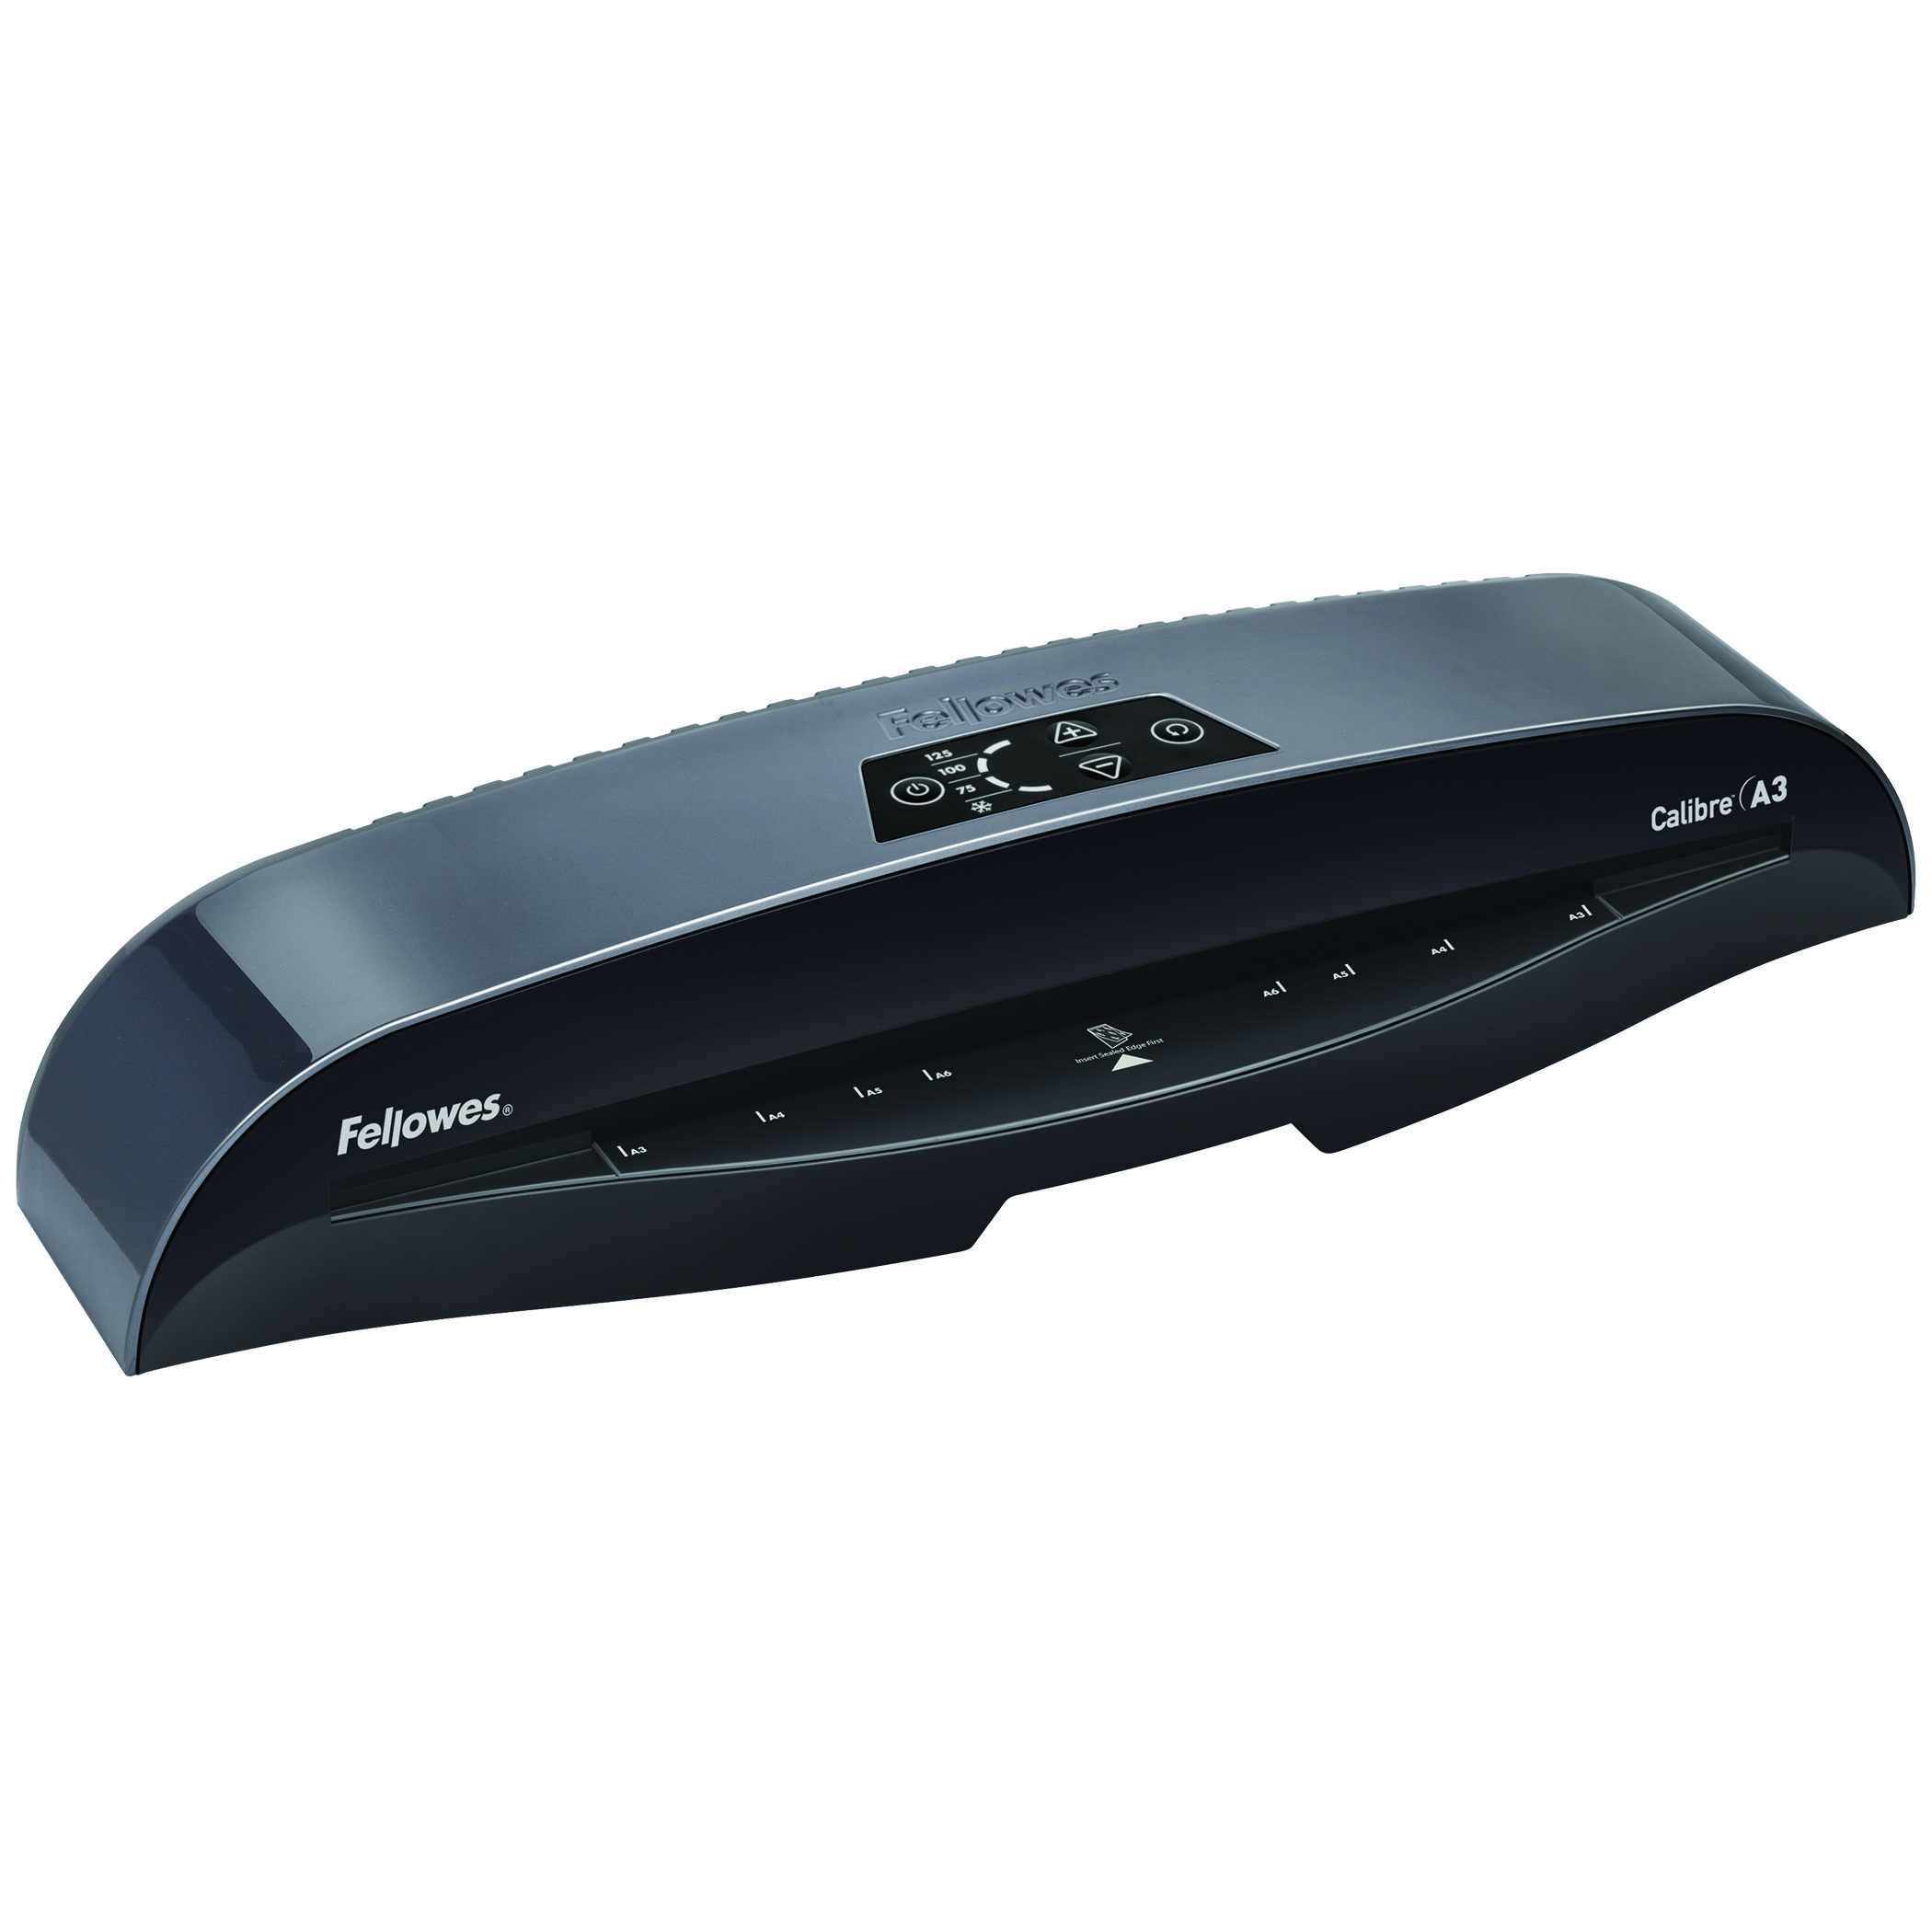 Fellowes Calibre A3 Laminator 5740201